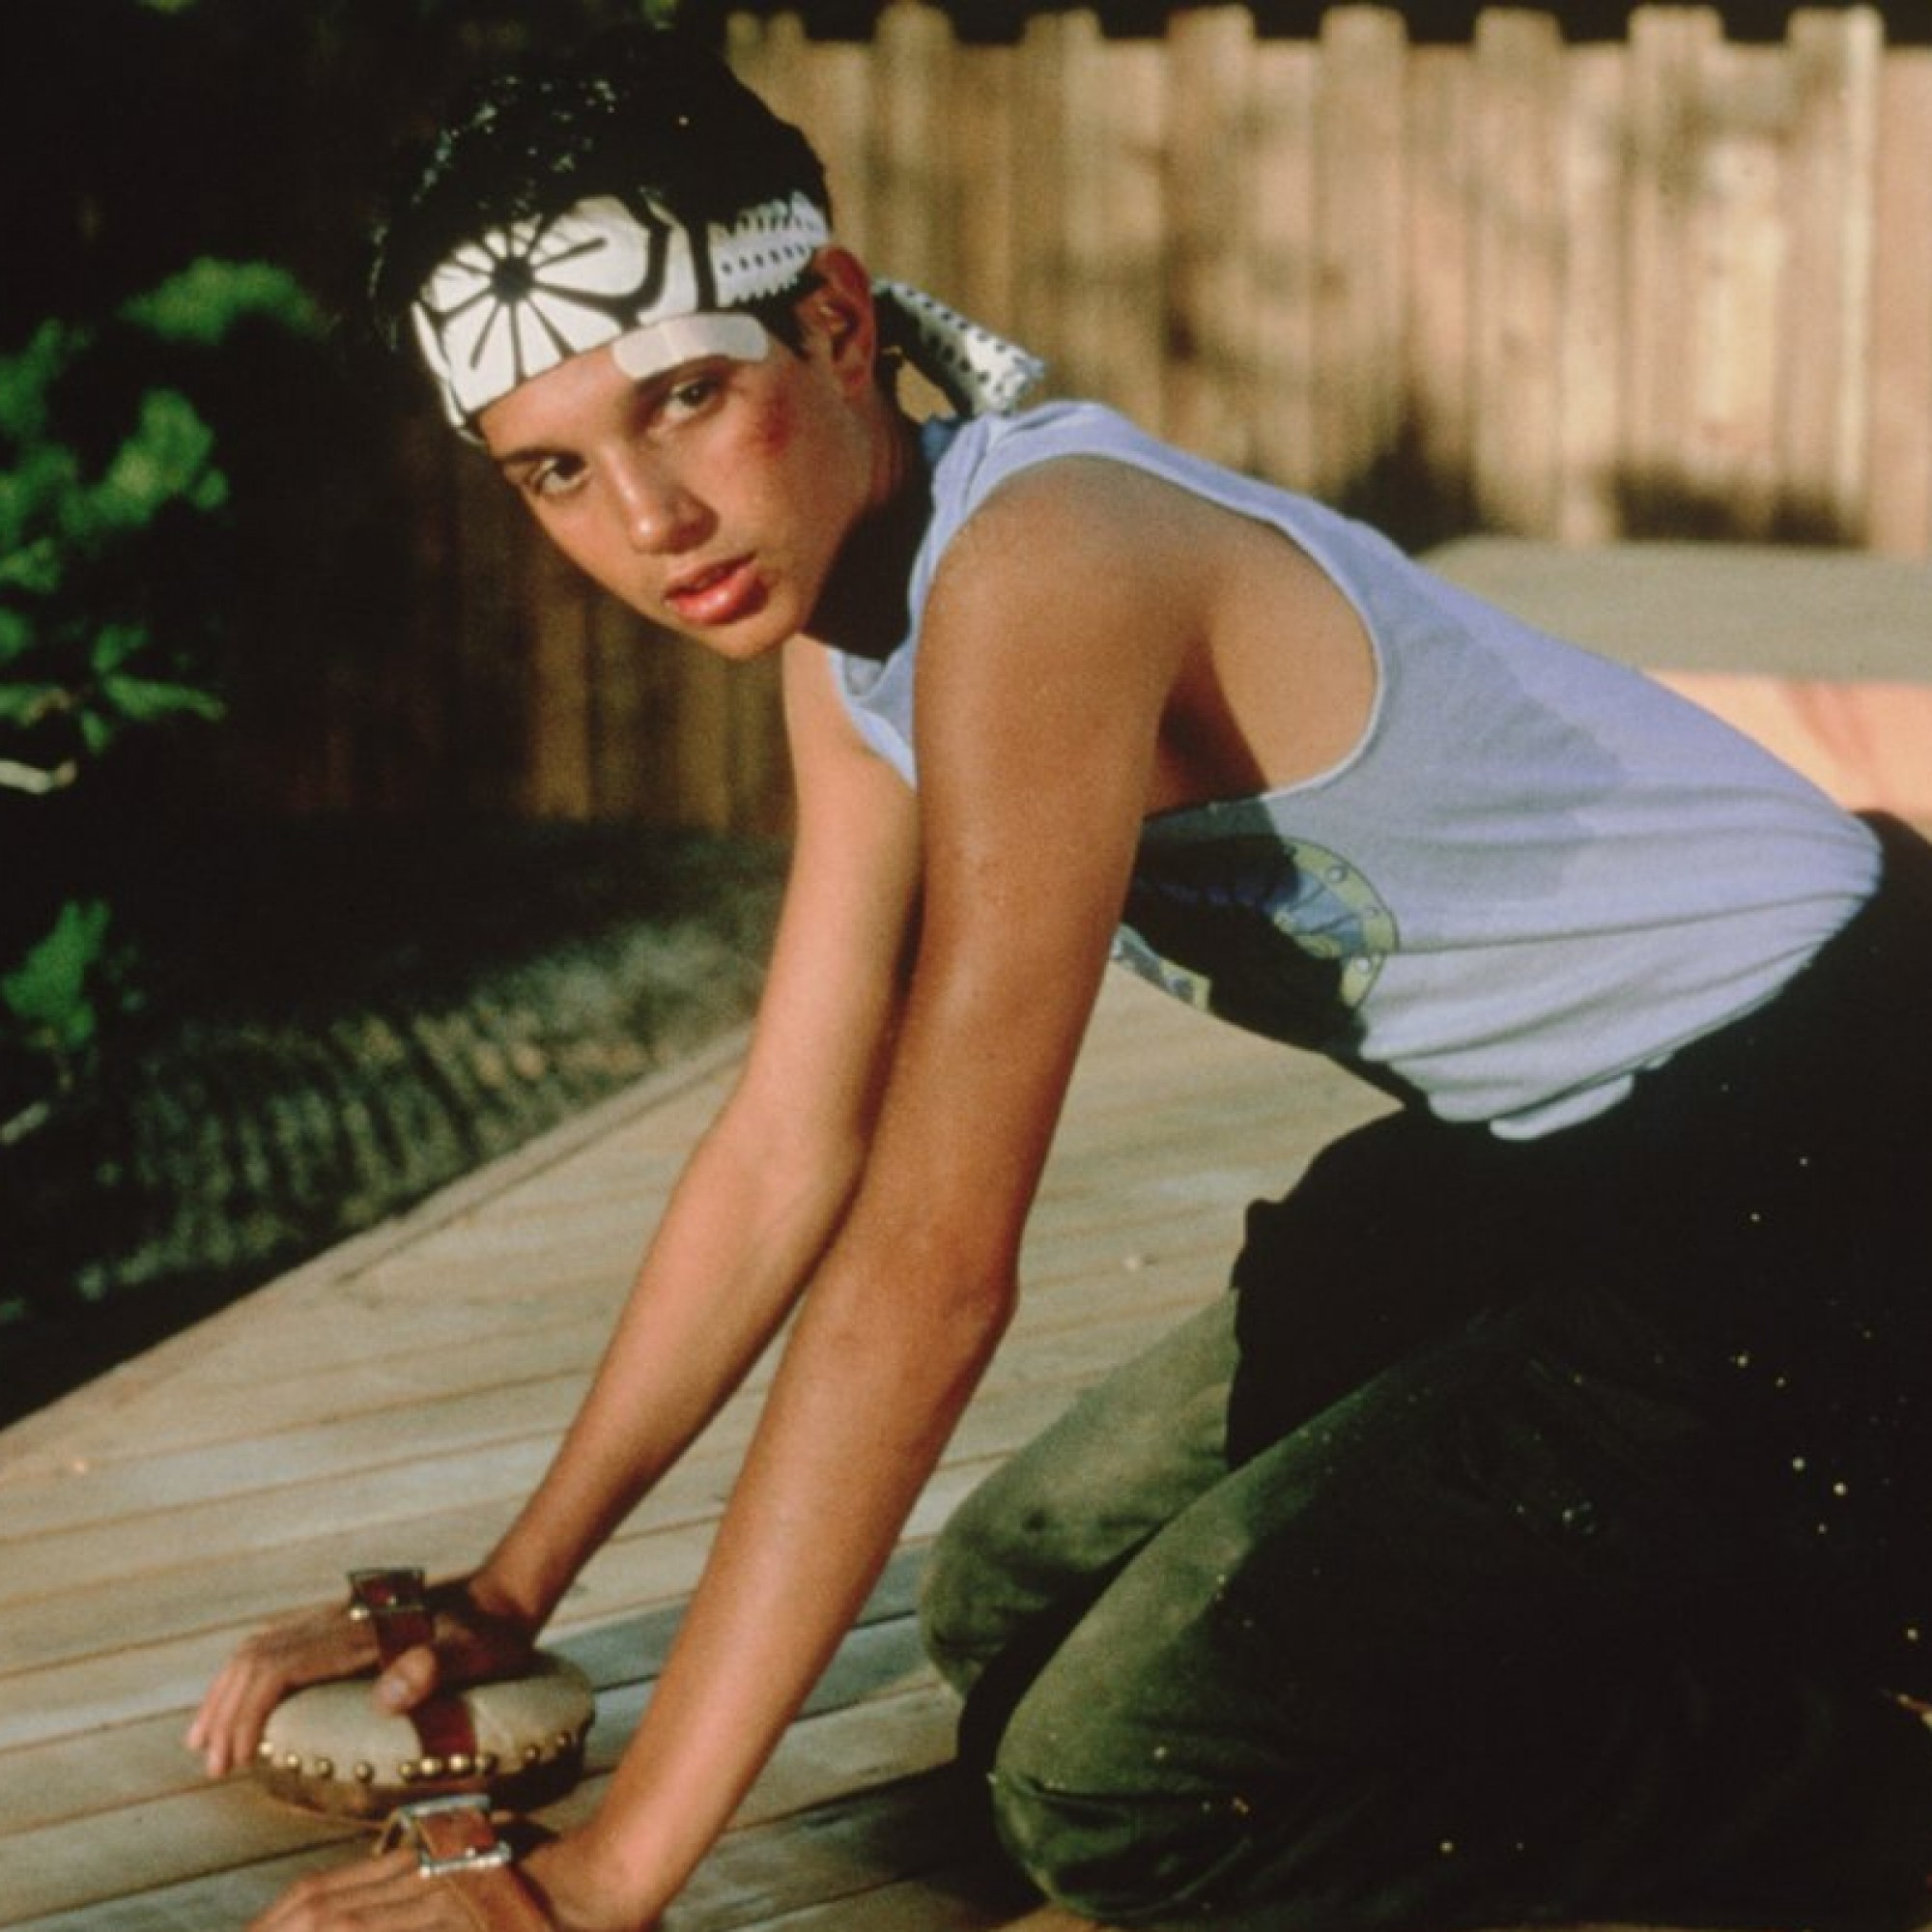 We're halfway through and seeking guidance from the Karate Kid